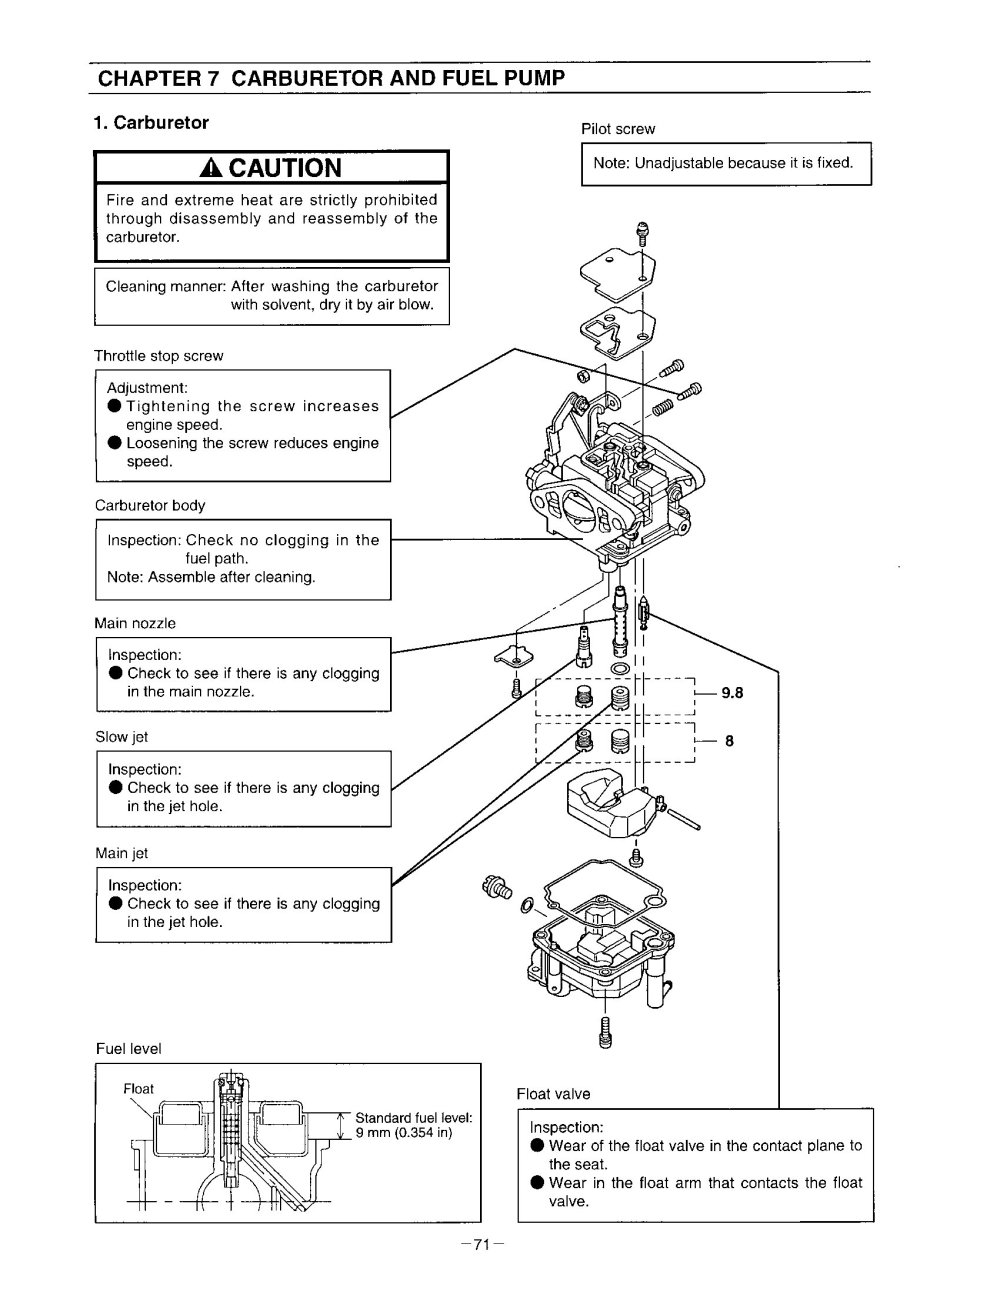 medium resolution of a page from an owner s manual on how to adjust a carburetor while specific to